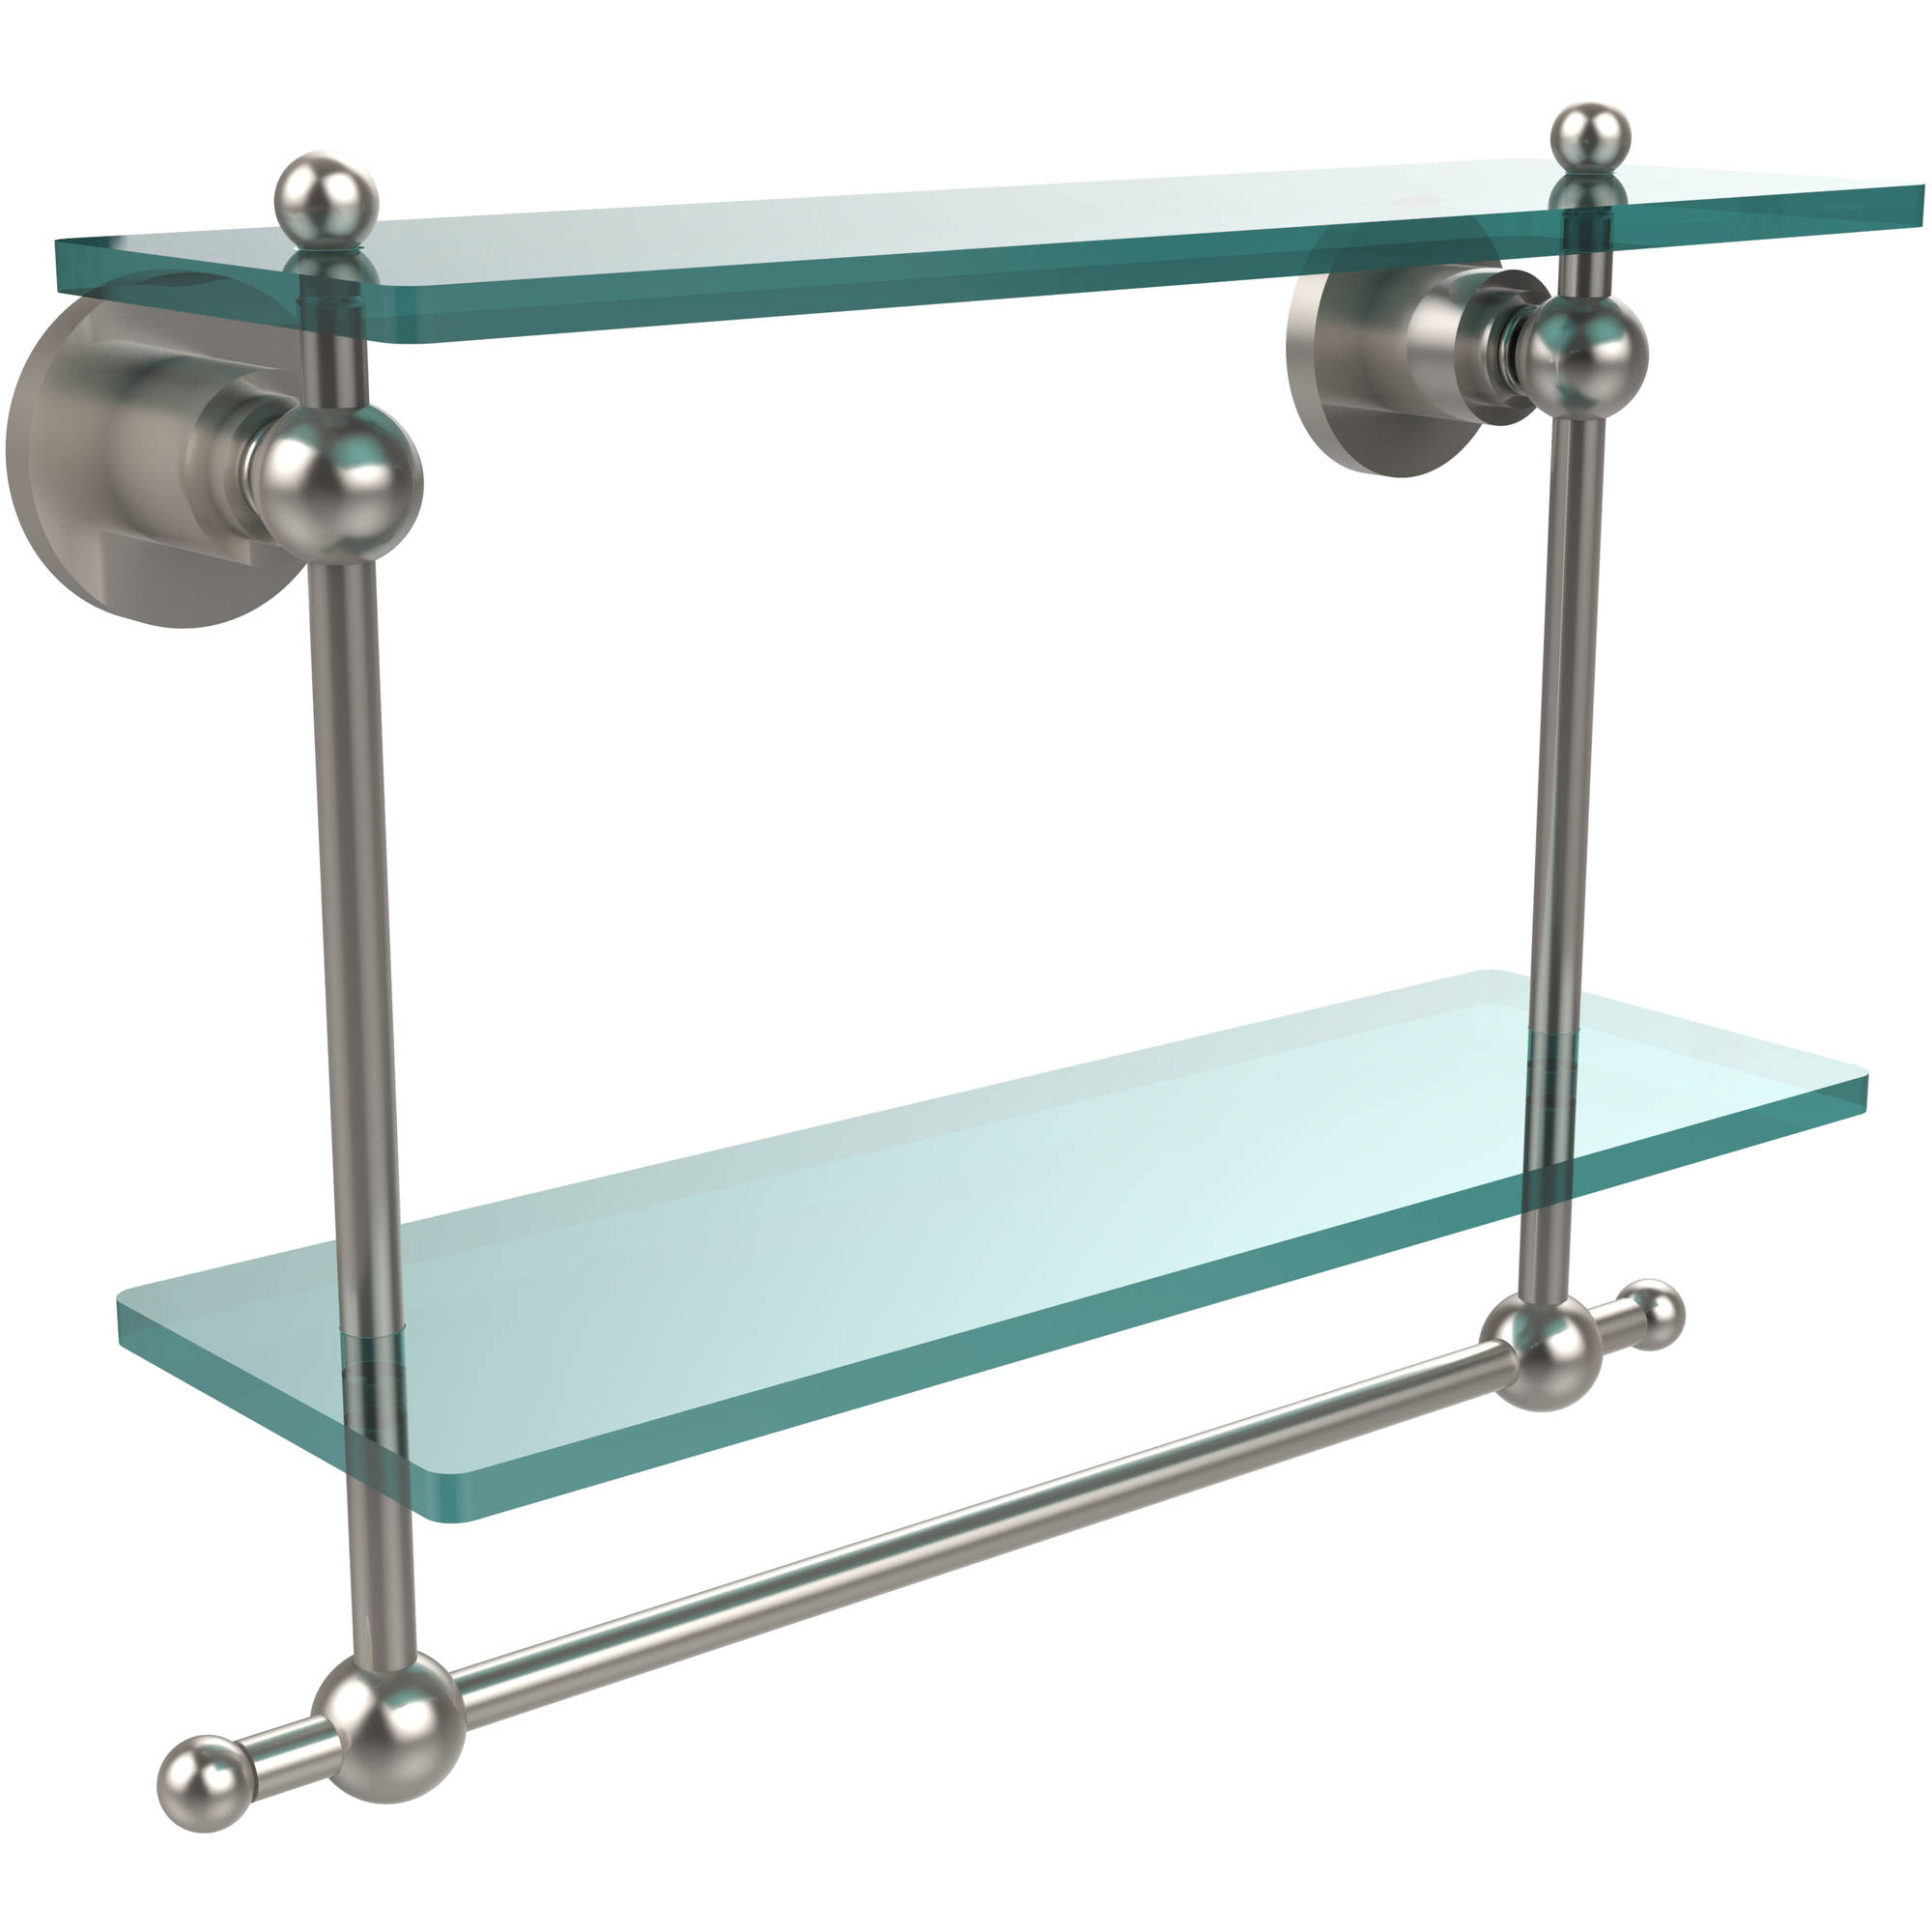 "Astor Place Collection 16"" 2-Tiered Glass Shelf with Integrated Towel Bar (Build to Order)"